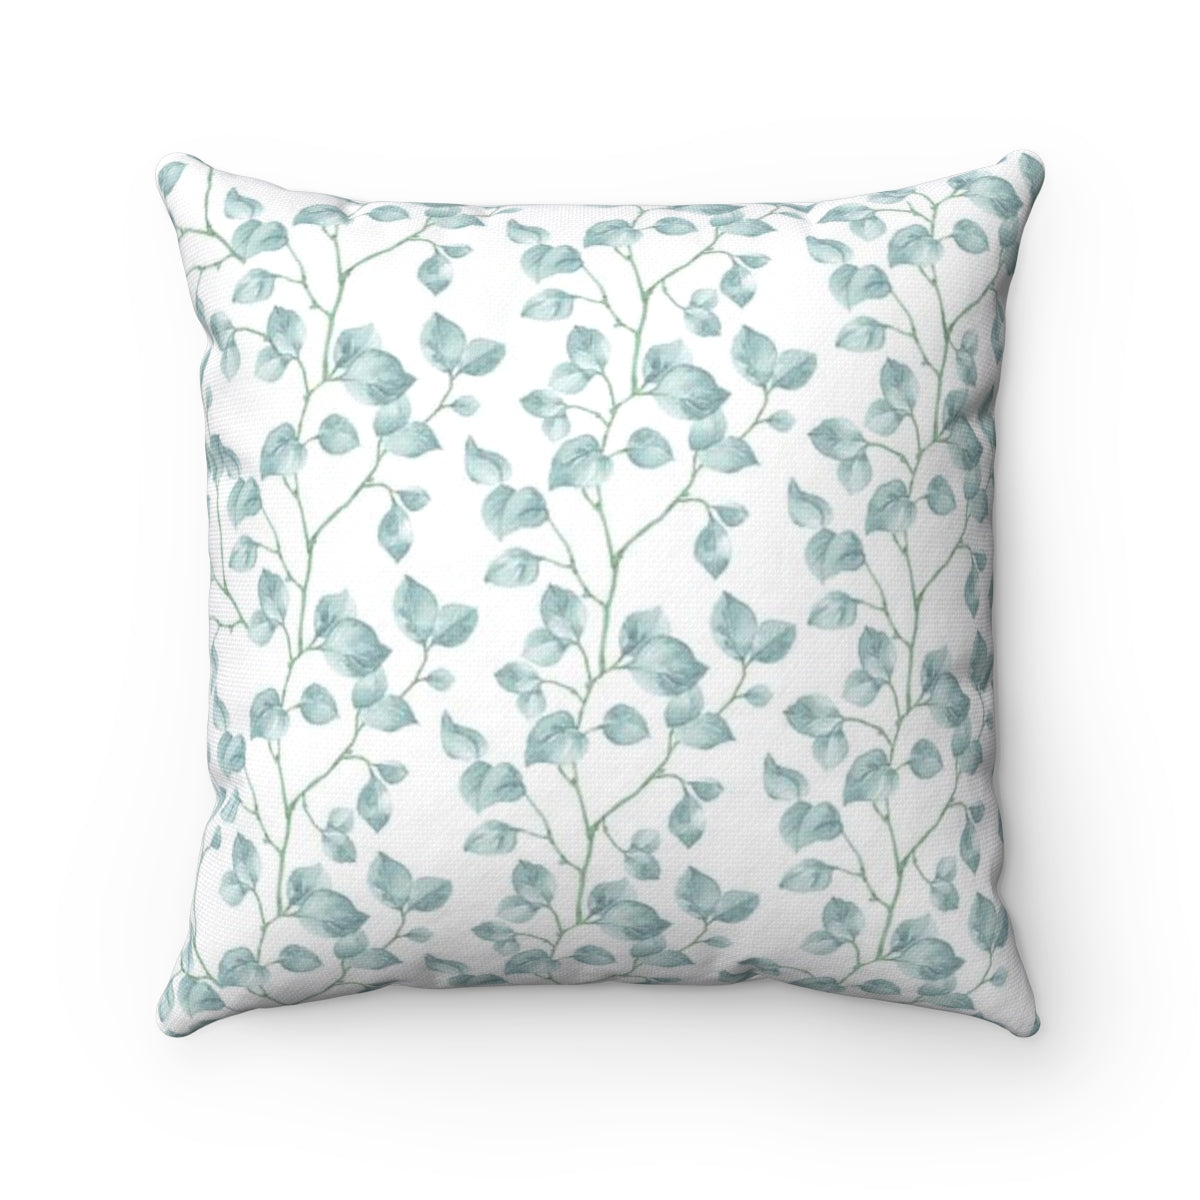 light blue decorative pillow - Liz Kapiloto Art & Design